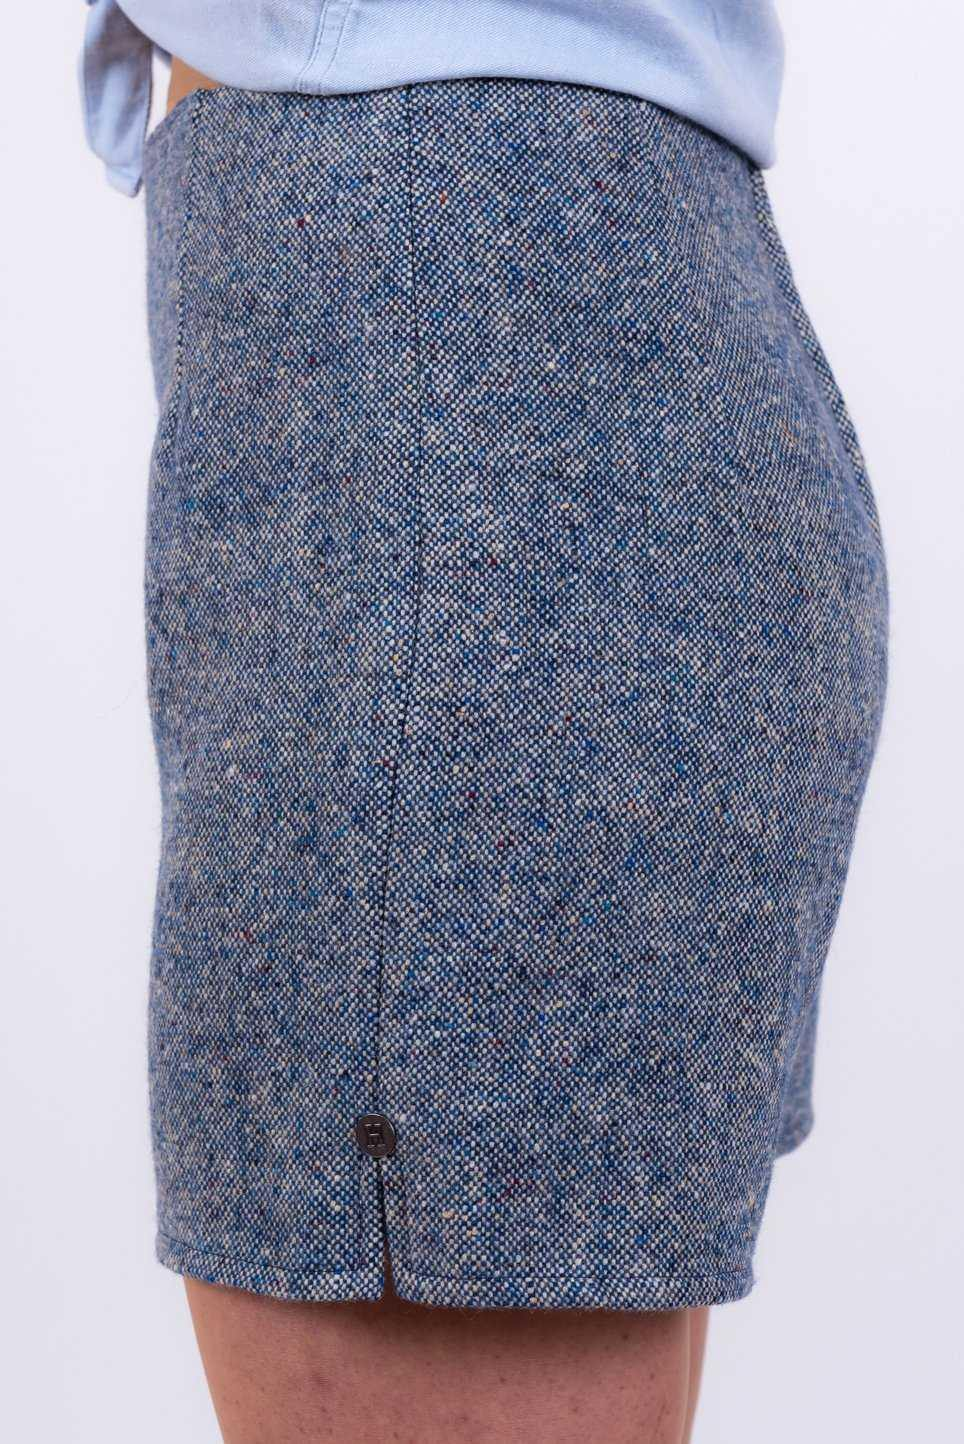 Blue Donegal Tweed Shorts Tweed Shorts Tweed.ie 10